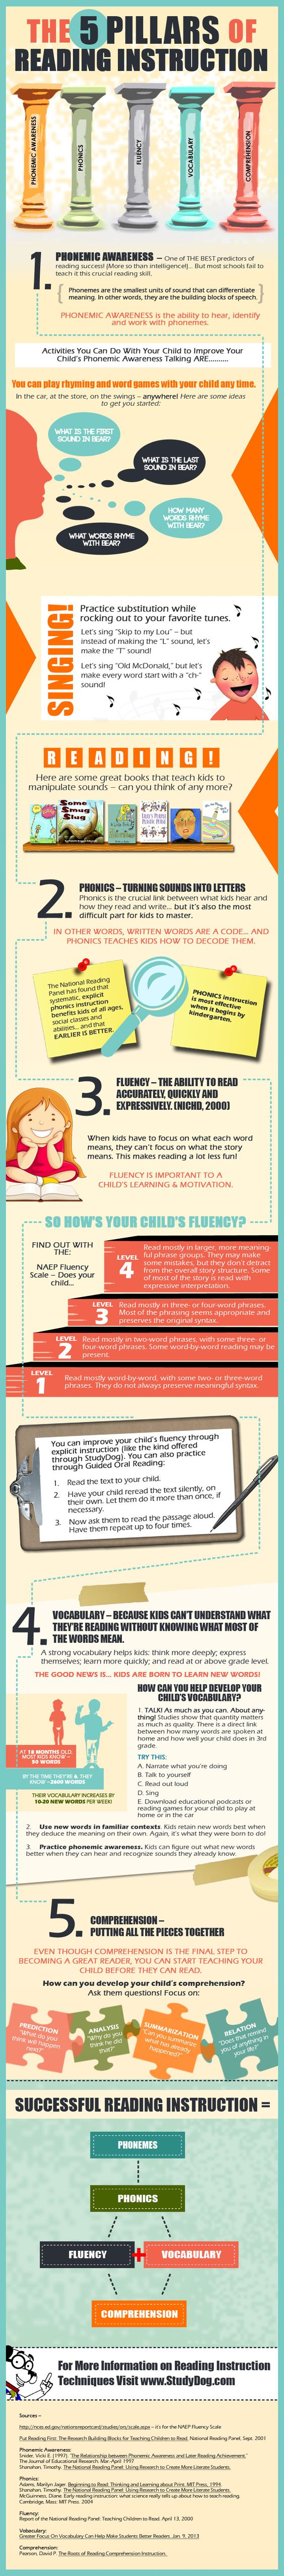 Five Pillars of Reading Instruction & tips for parents and teachers to help build each one!